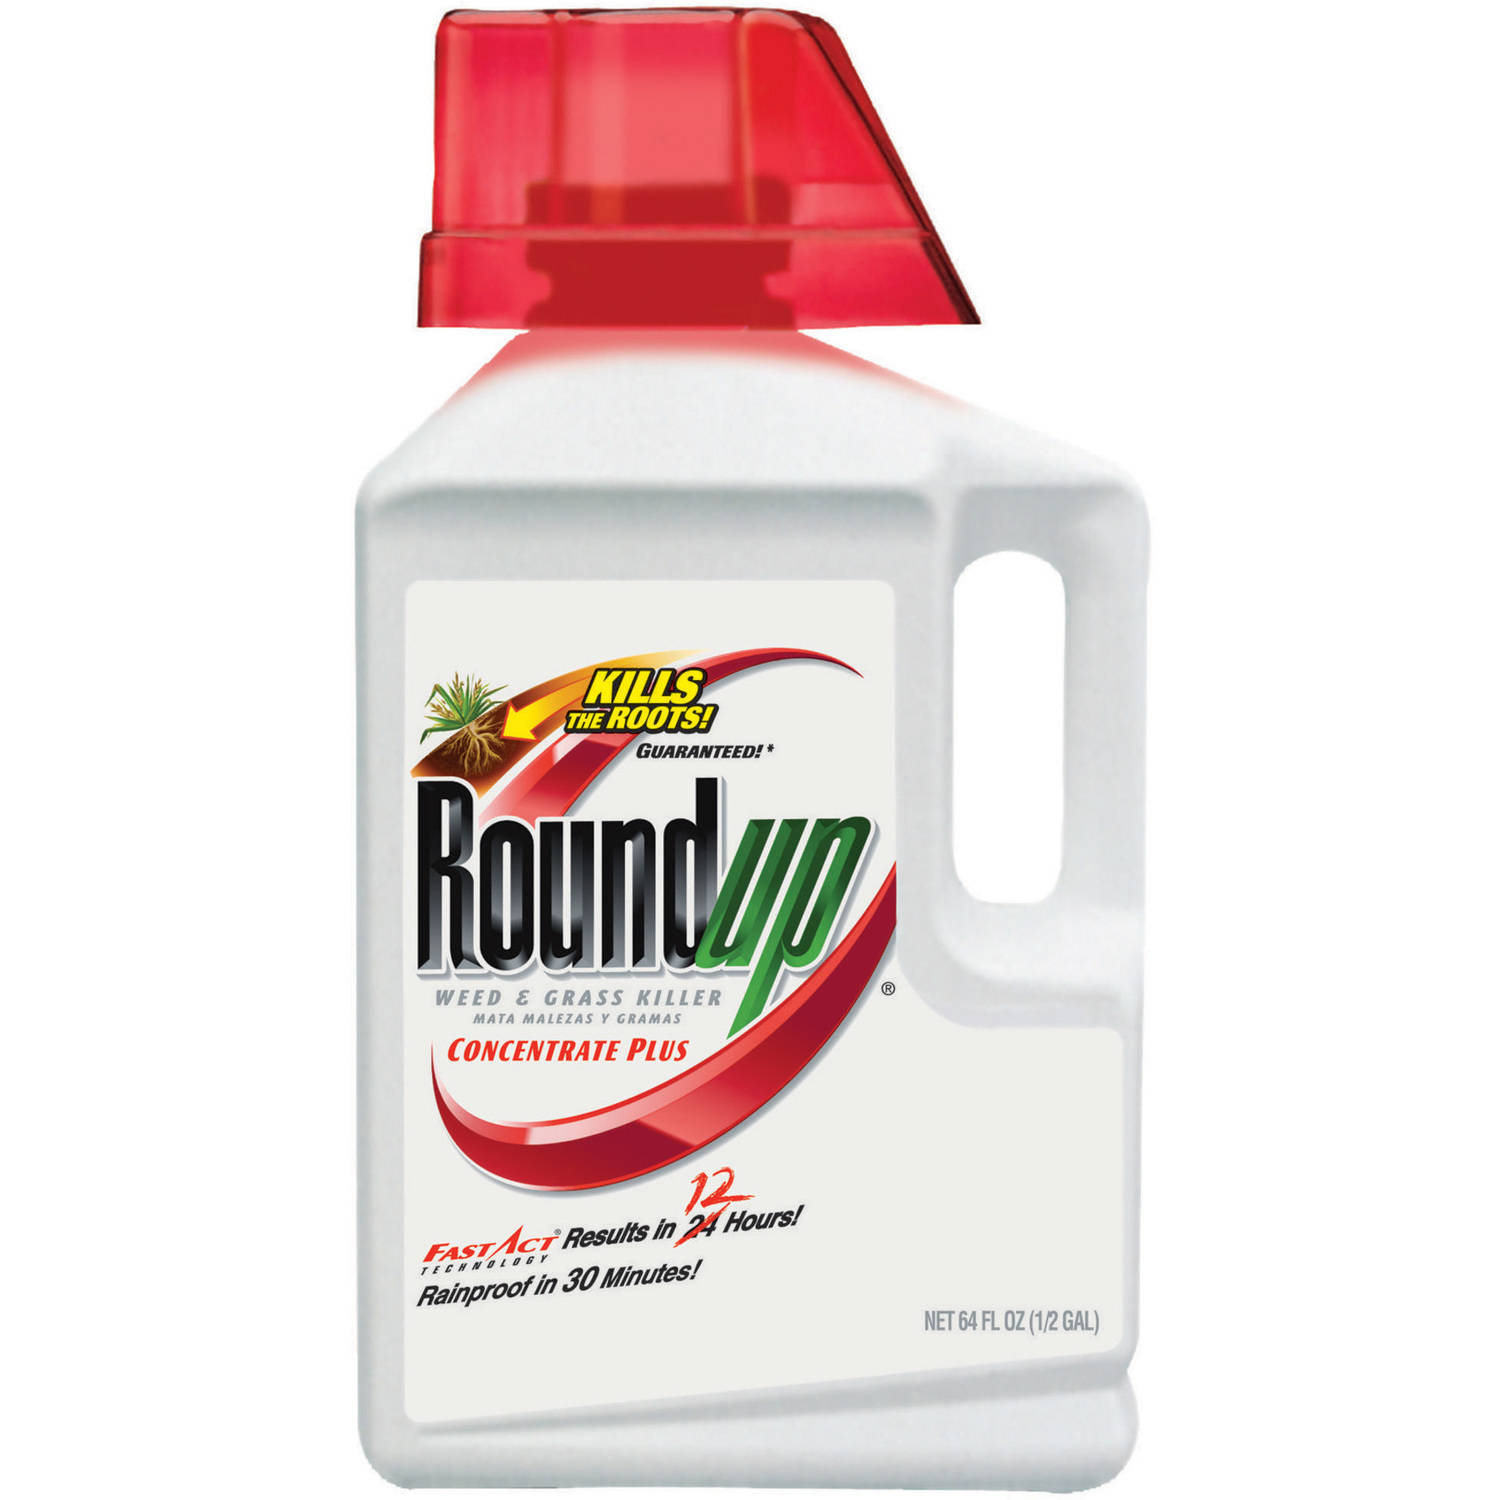 Roundup Weed & Grass Killer Concentrate Plus. 0.5 gal